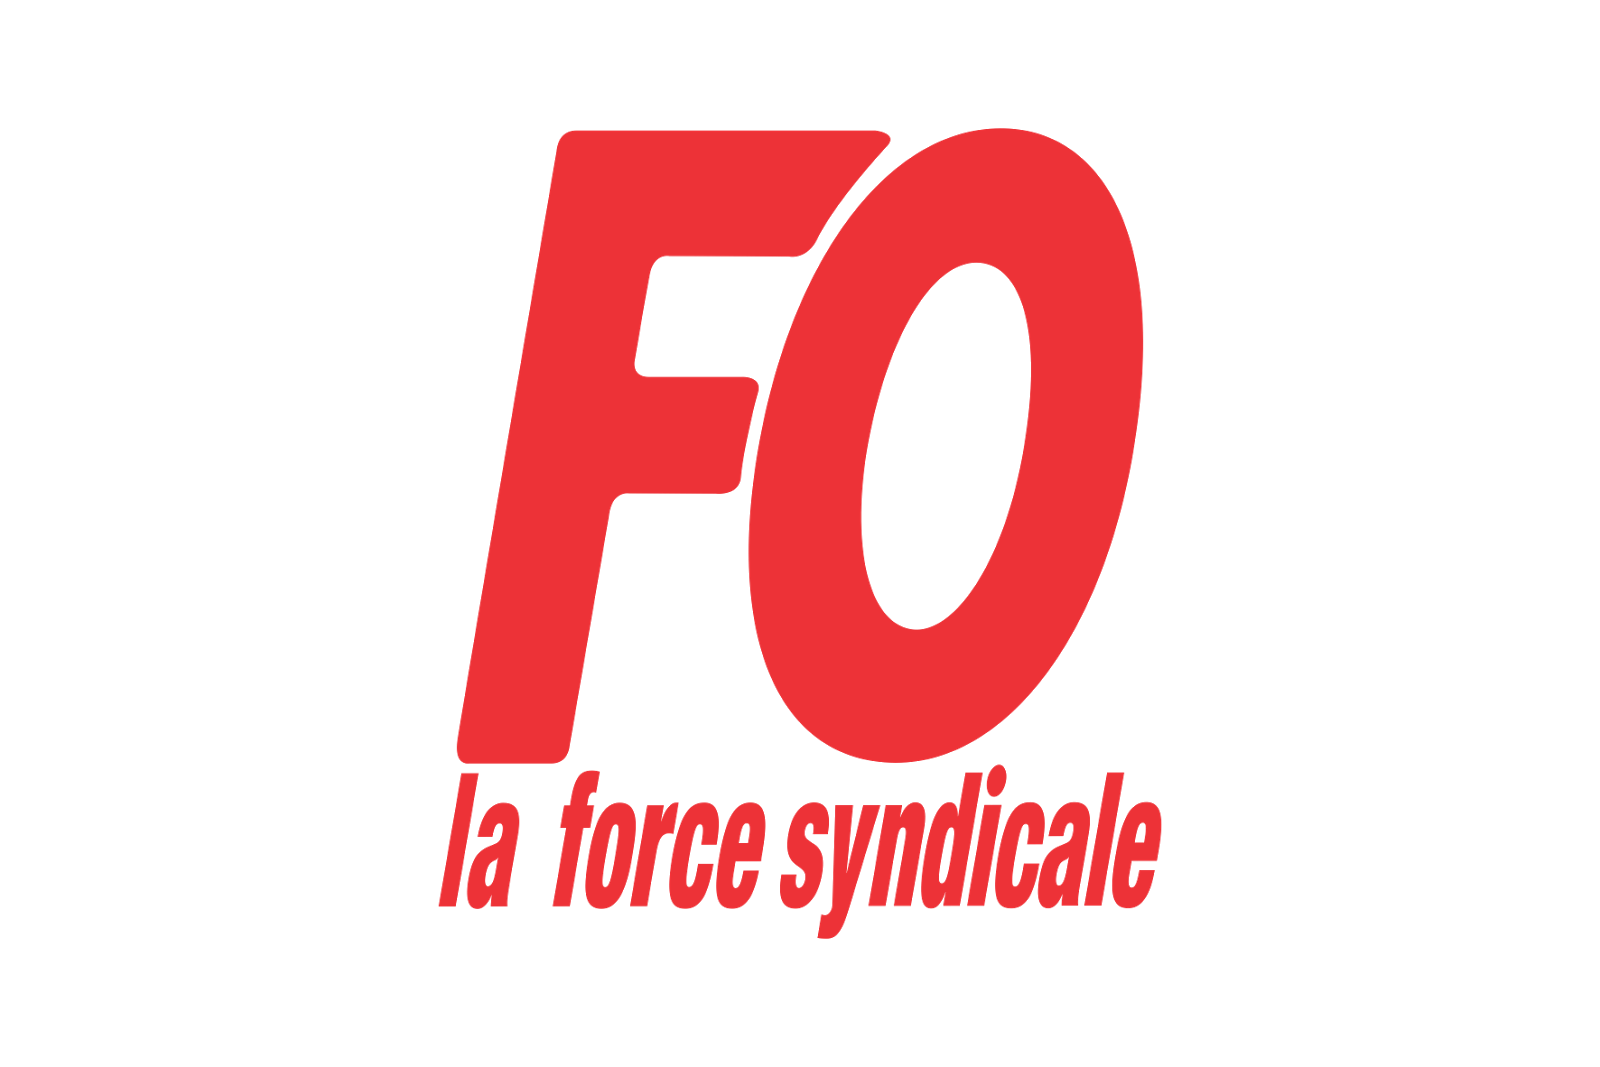 Logo-FO Convention collective - Force Ouvrière - La Force Syndicale